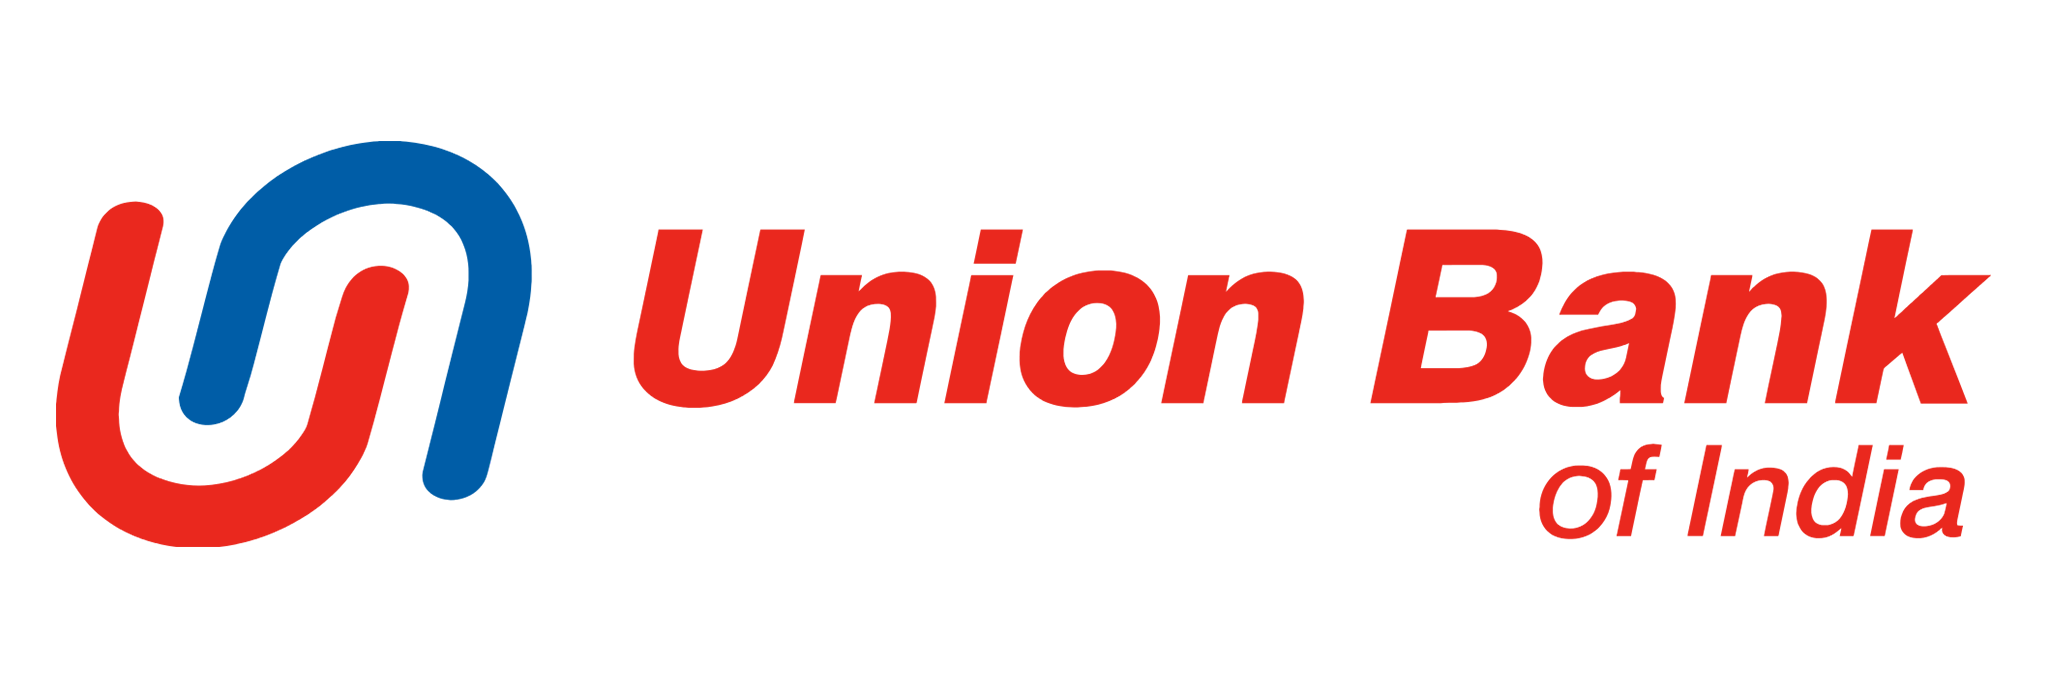 Union bank of india PNG.